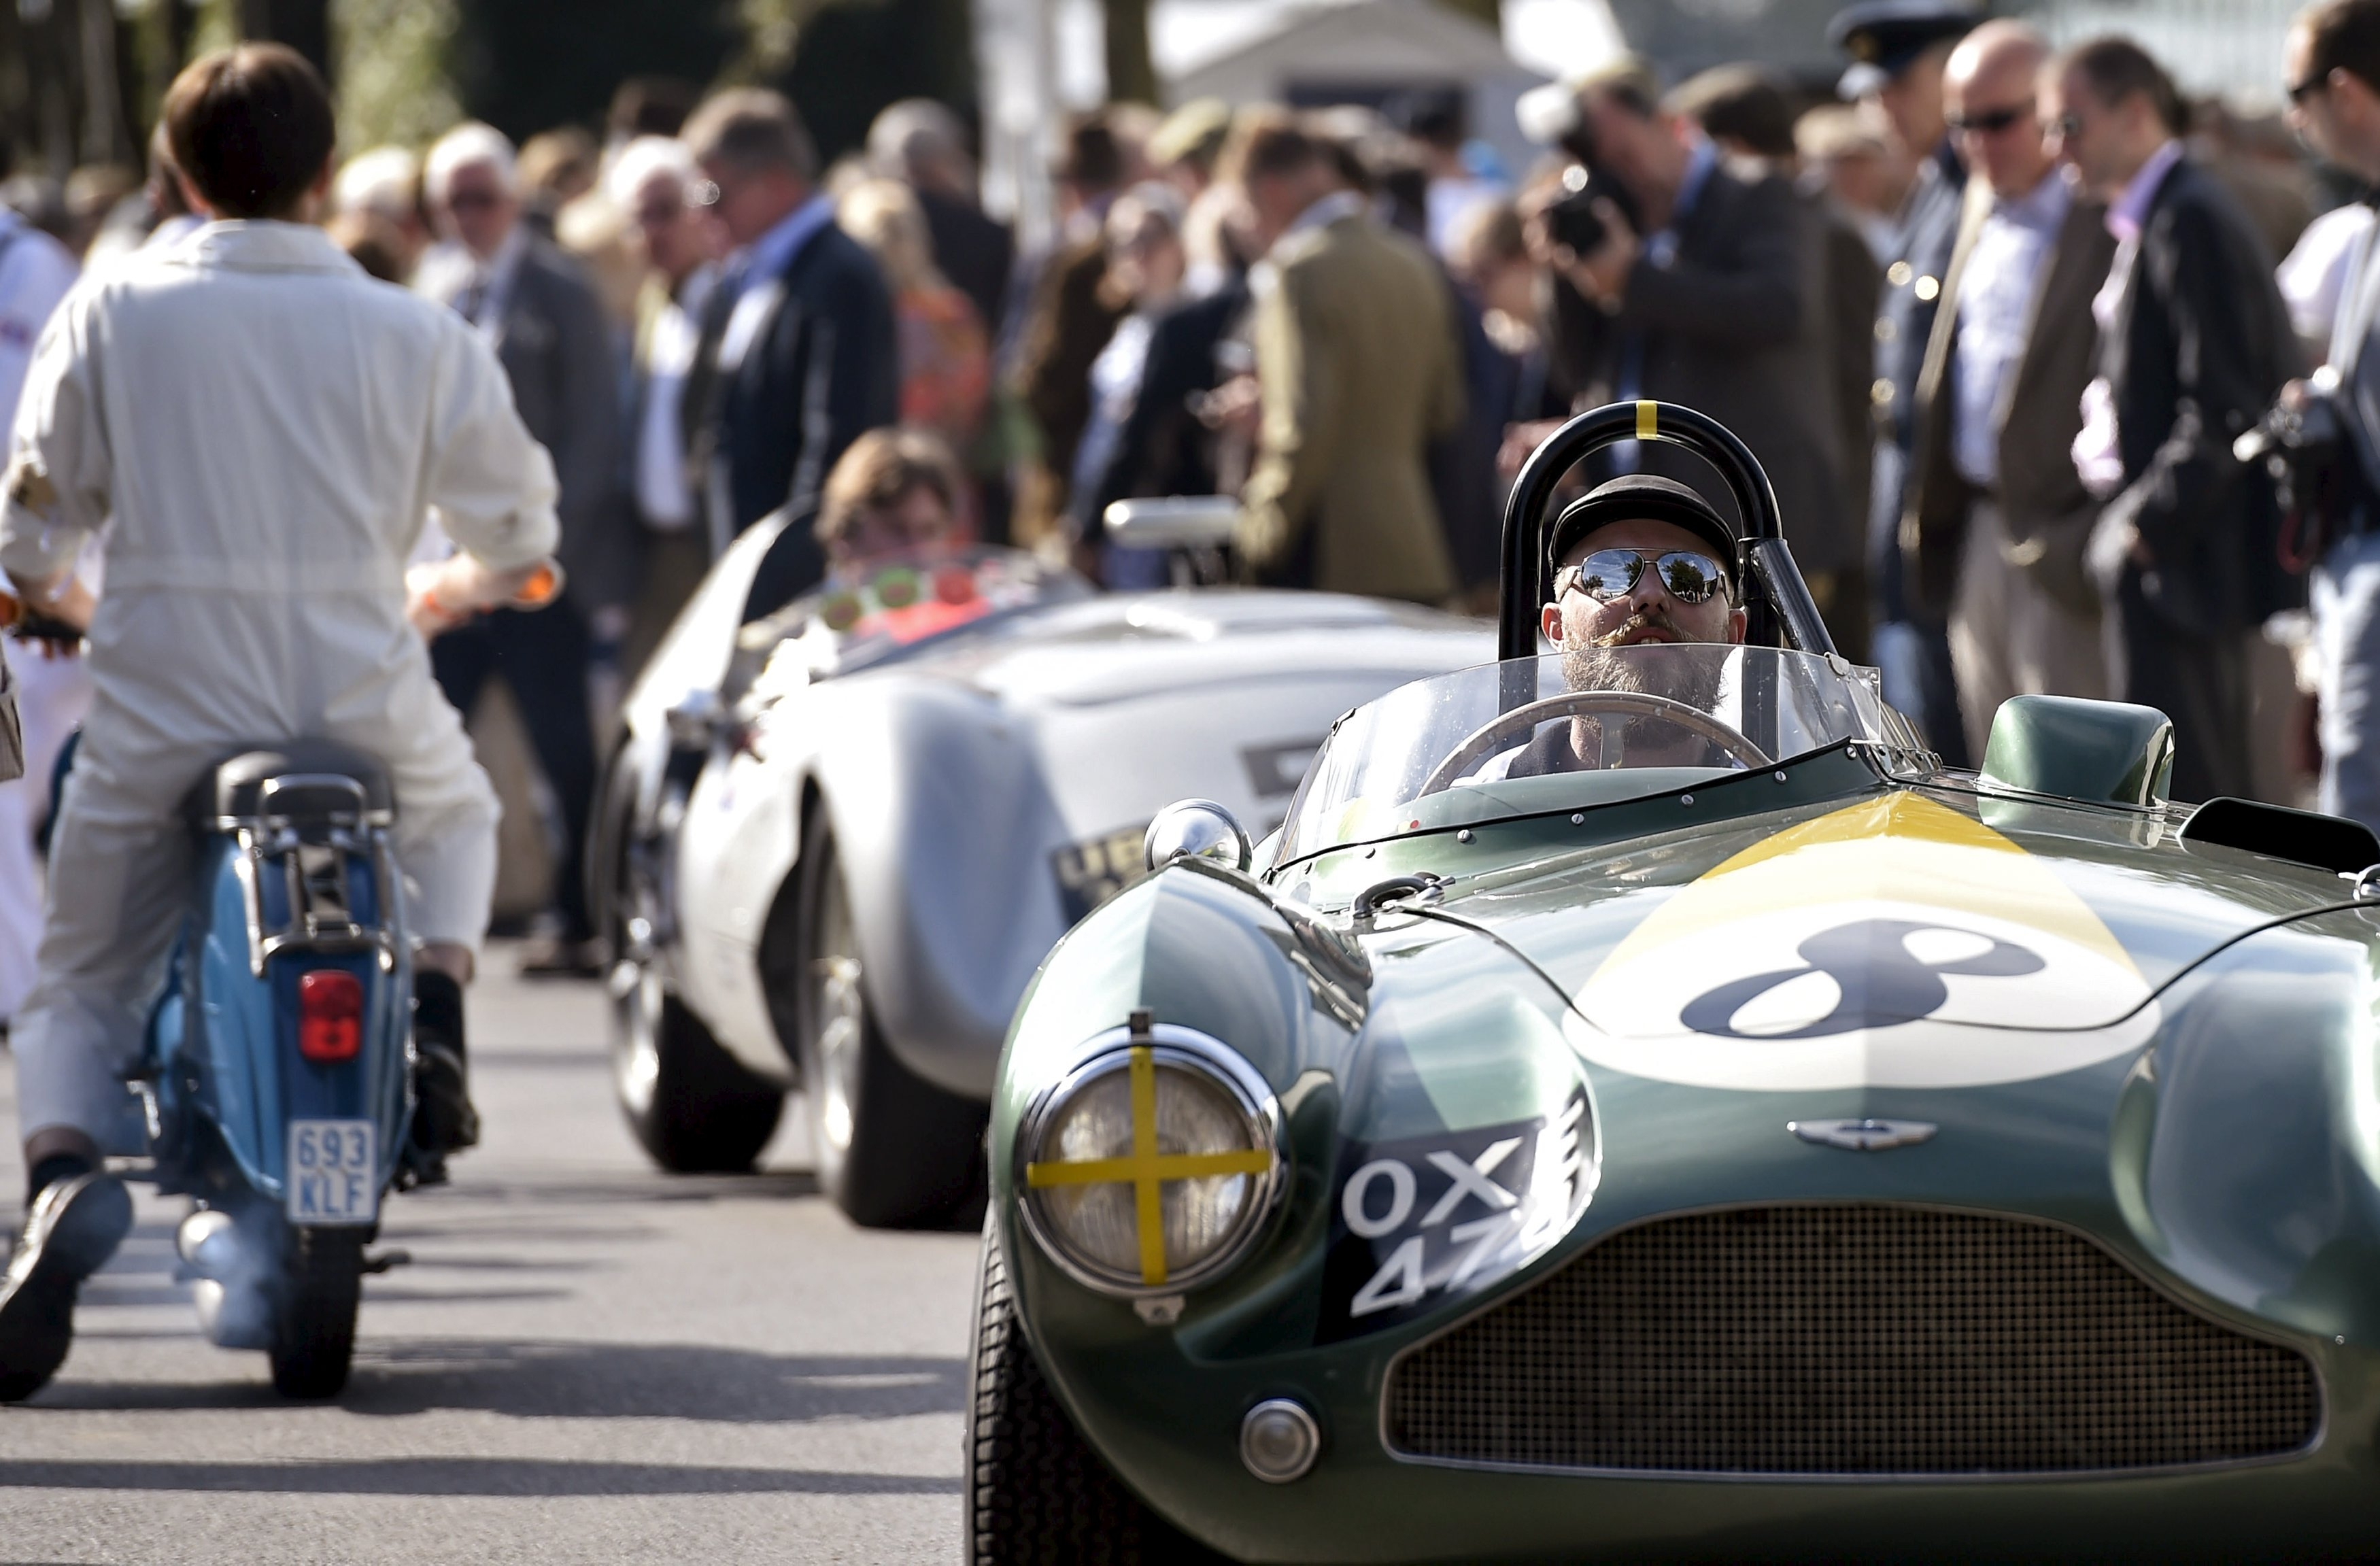 Visitors and car enthusiasts attend the Goodwood Revival historic motor racing festival in Goodwood, near Chichester in south England, Britain